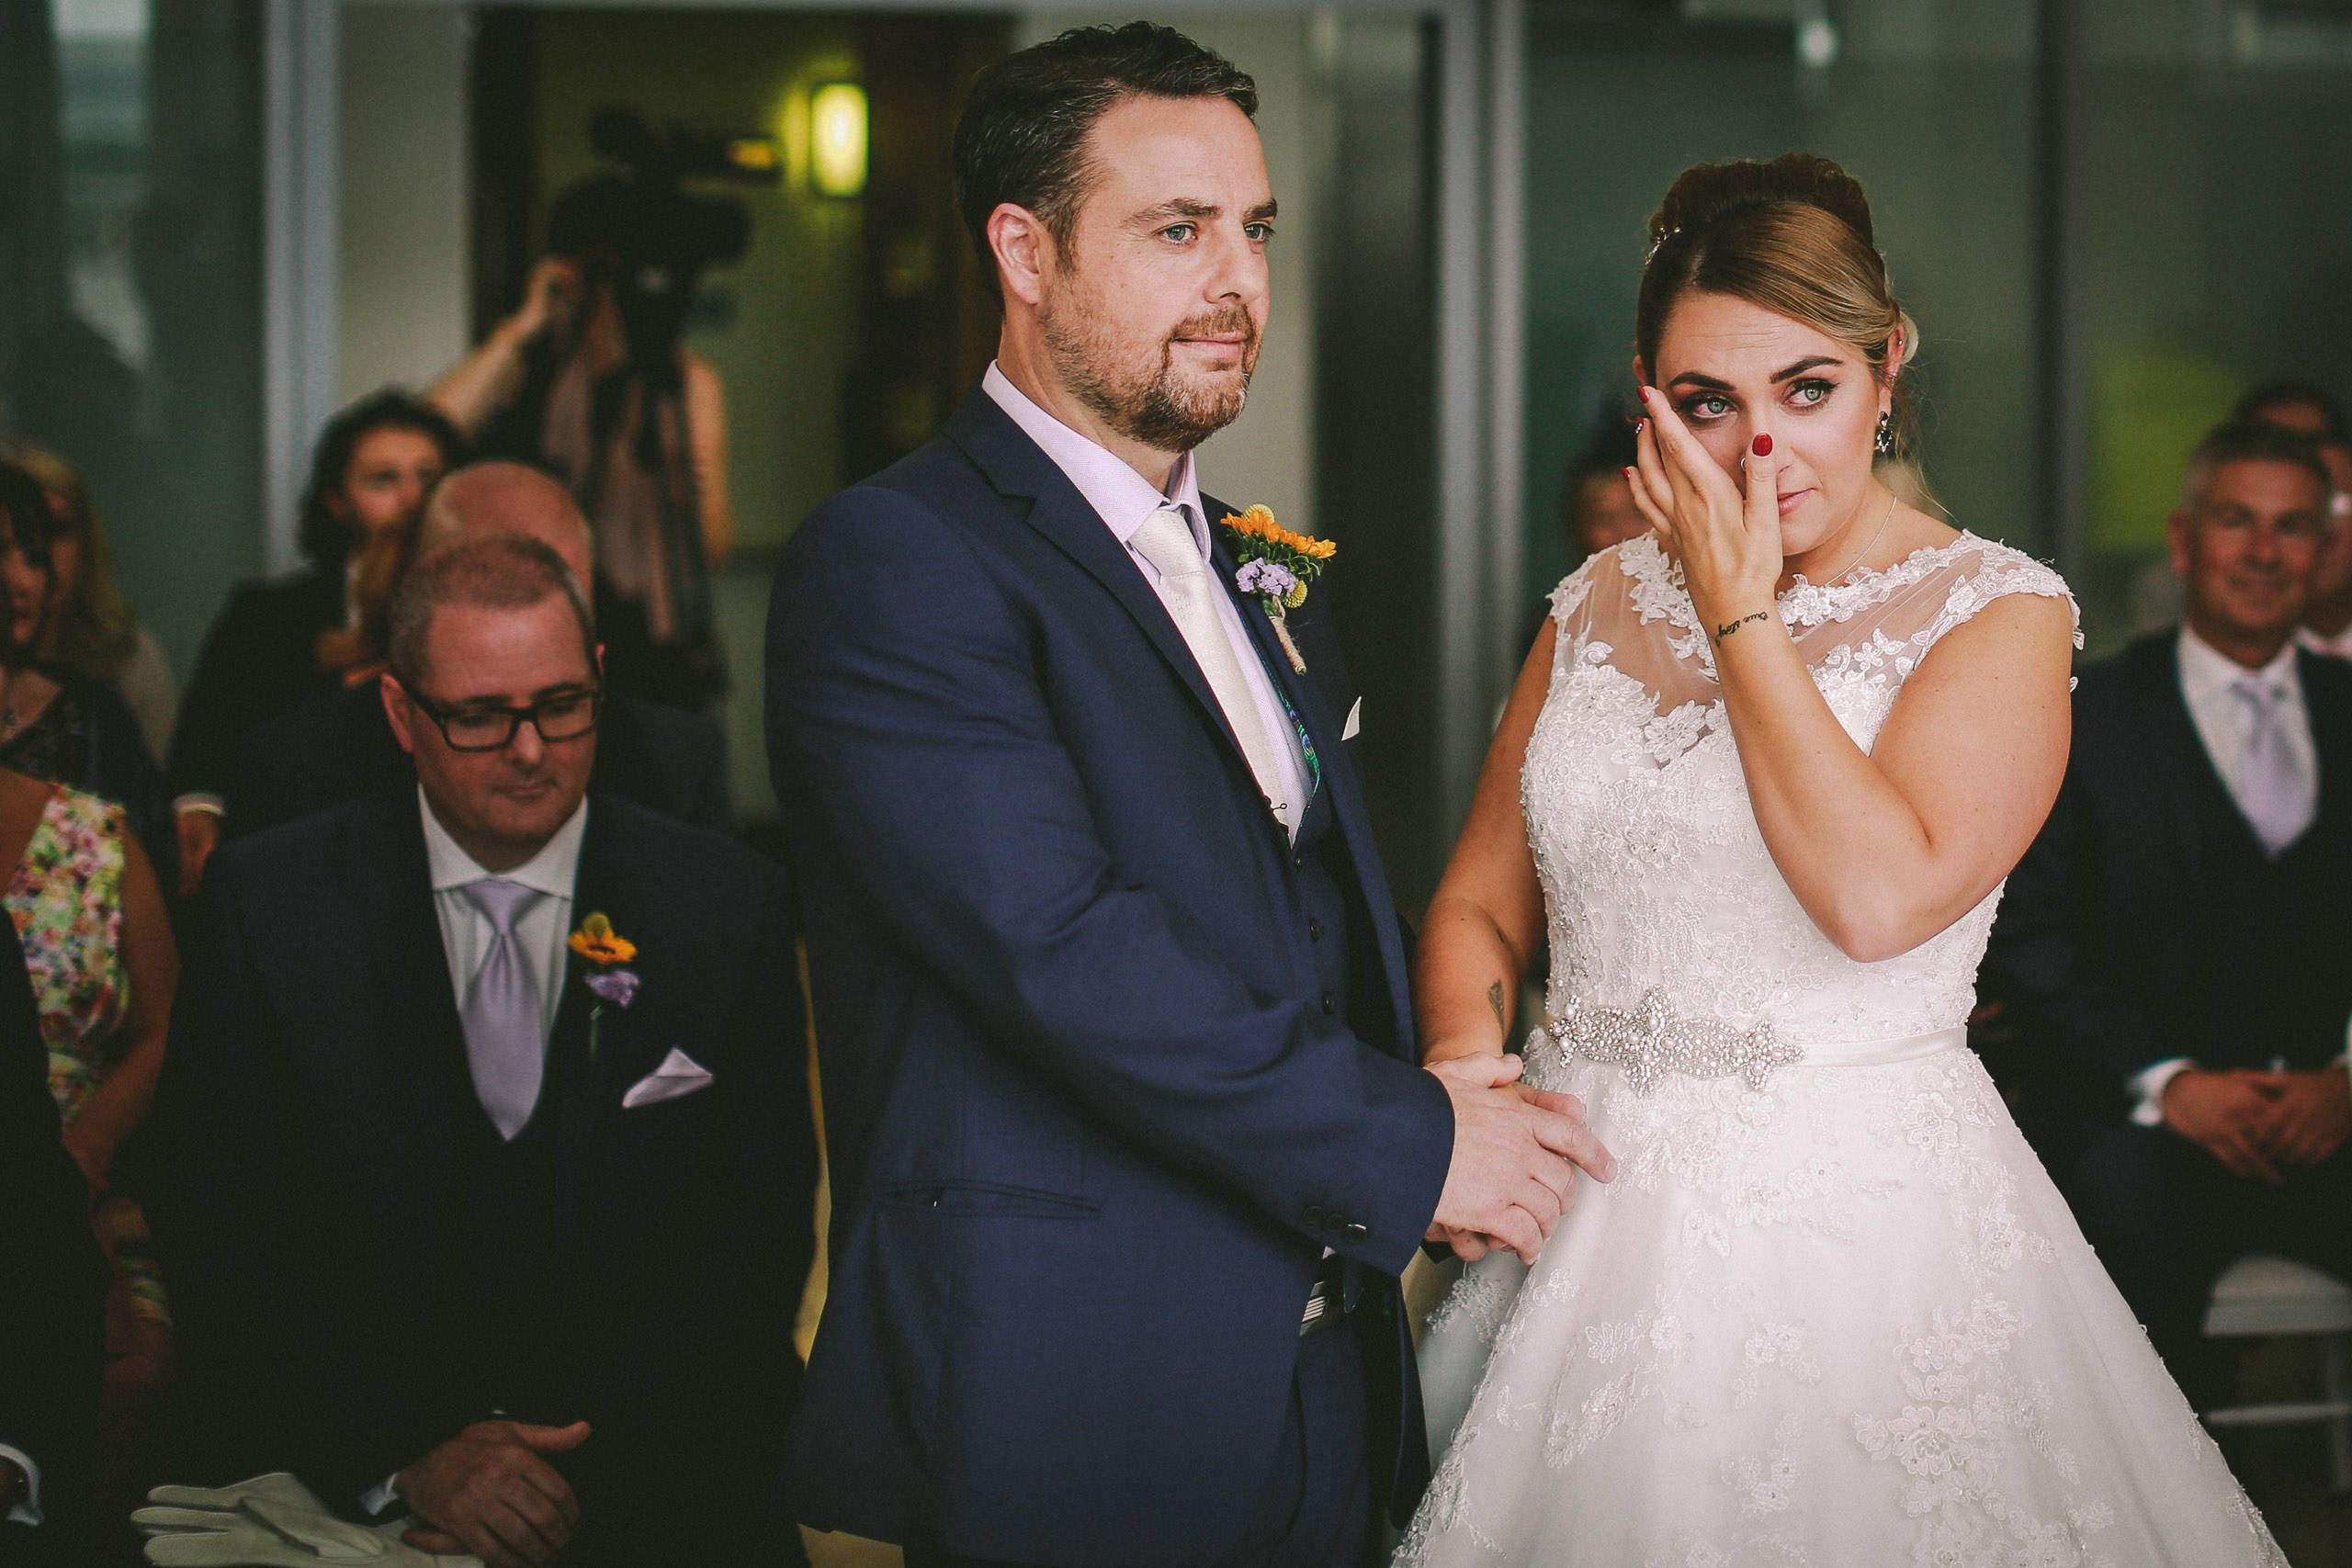 Liver Building wedding Bride wiping tears during wedding ceremony Royal Liver Building Liverpool